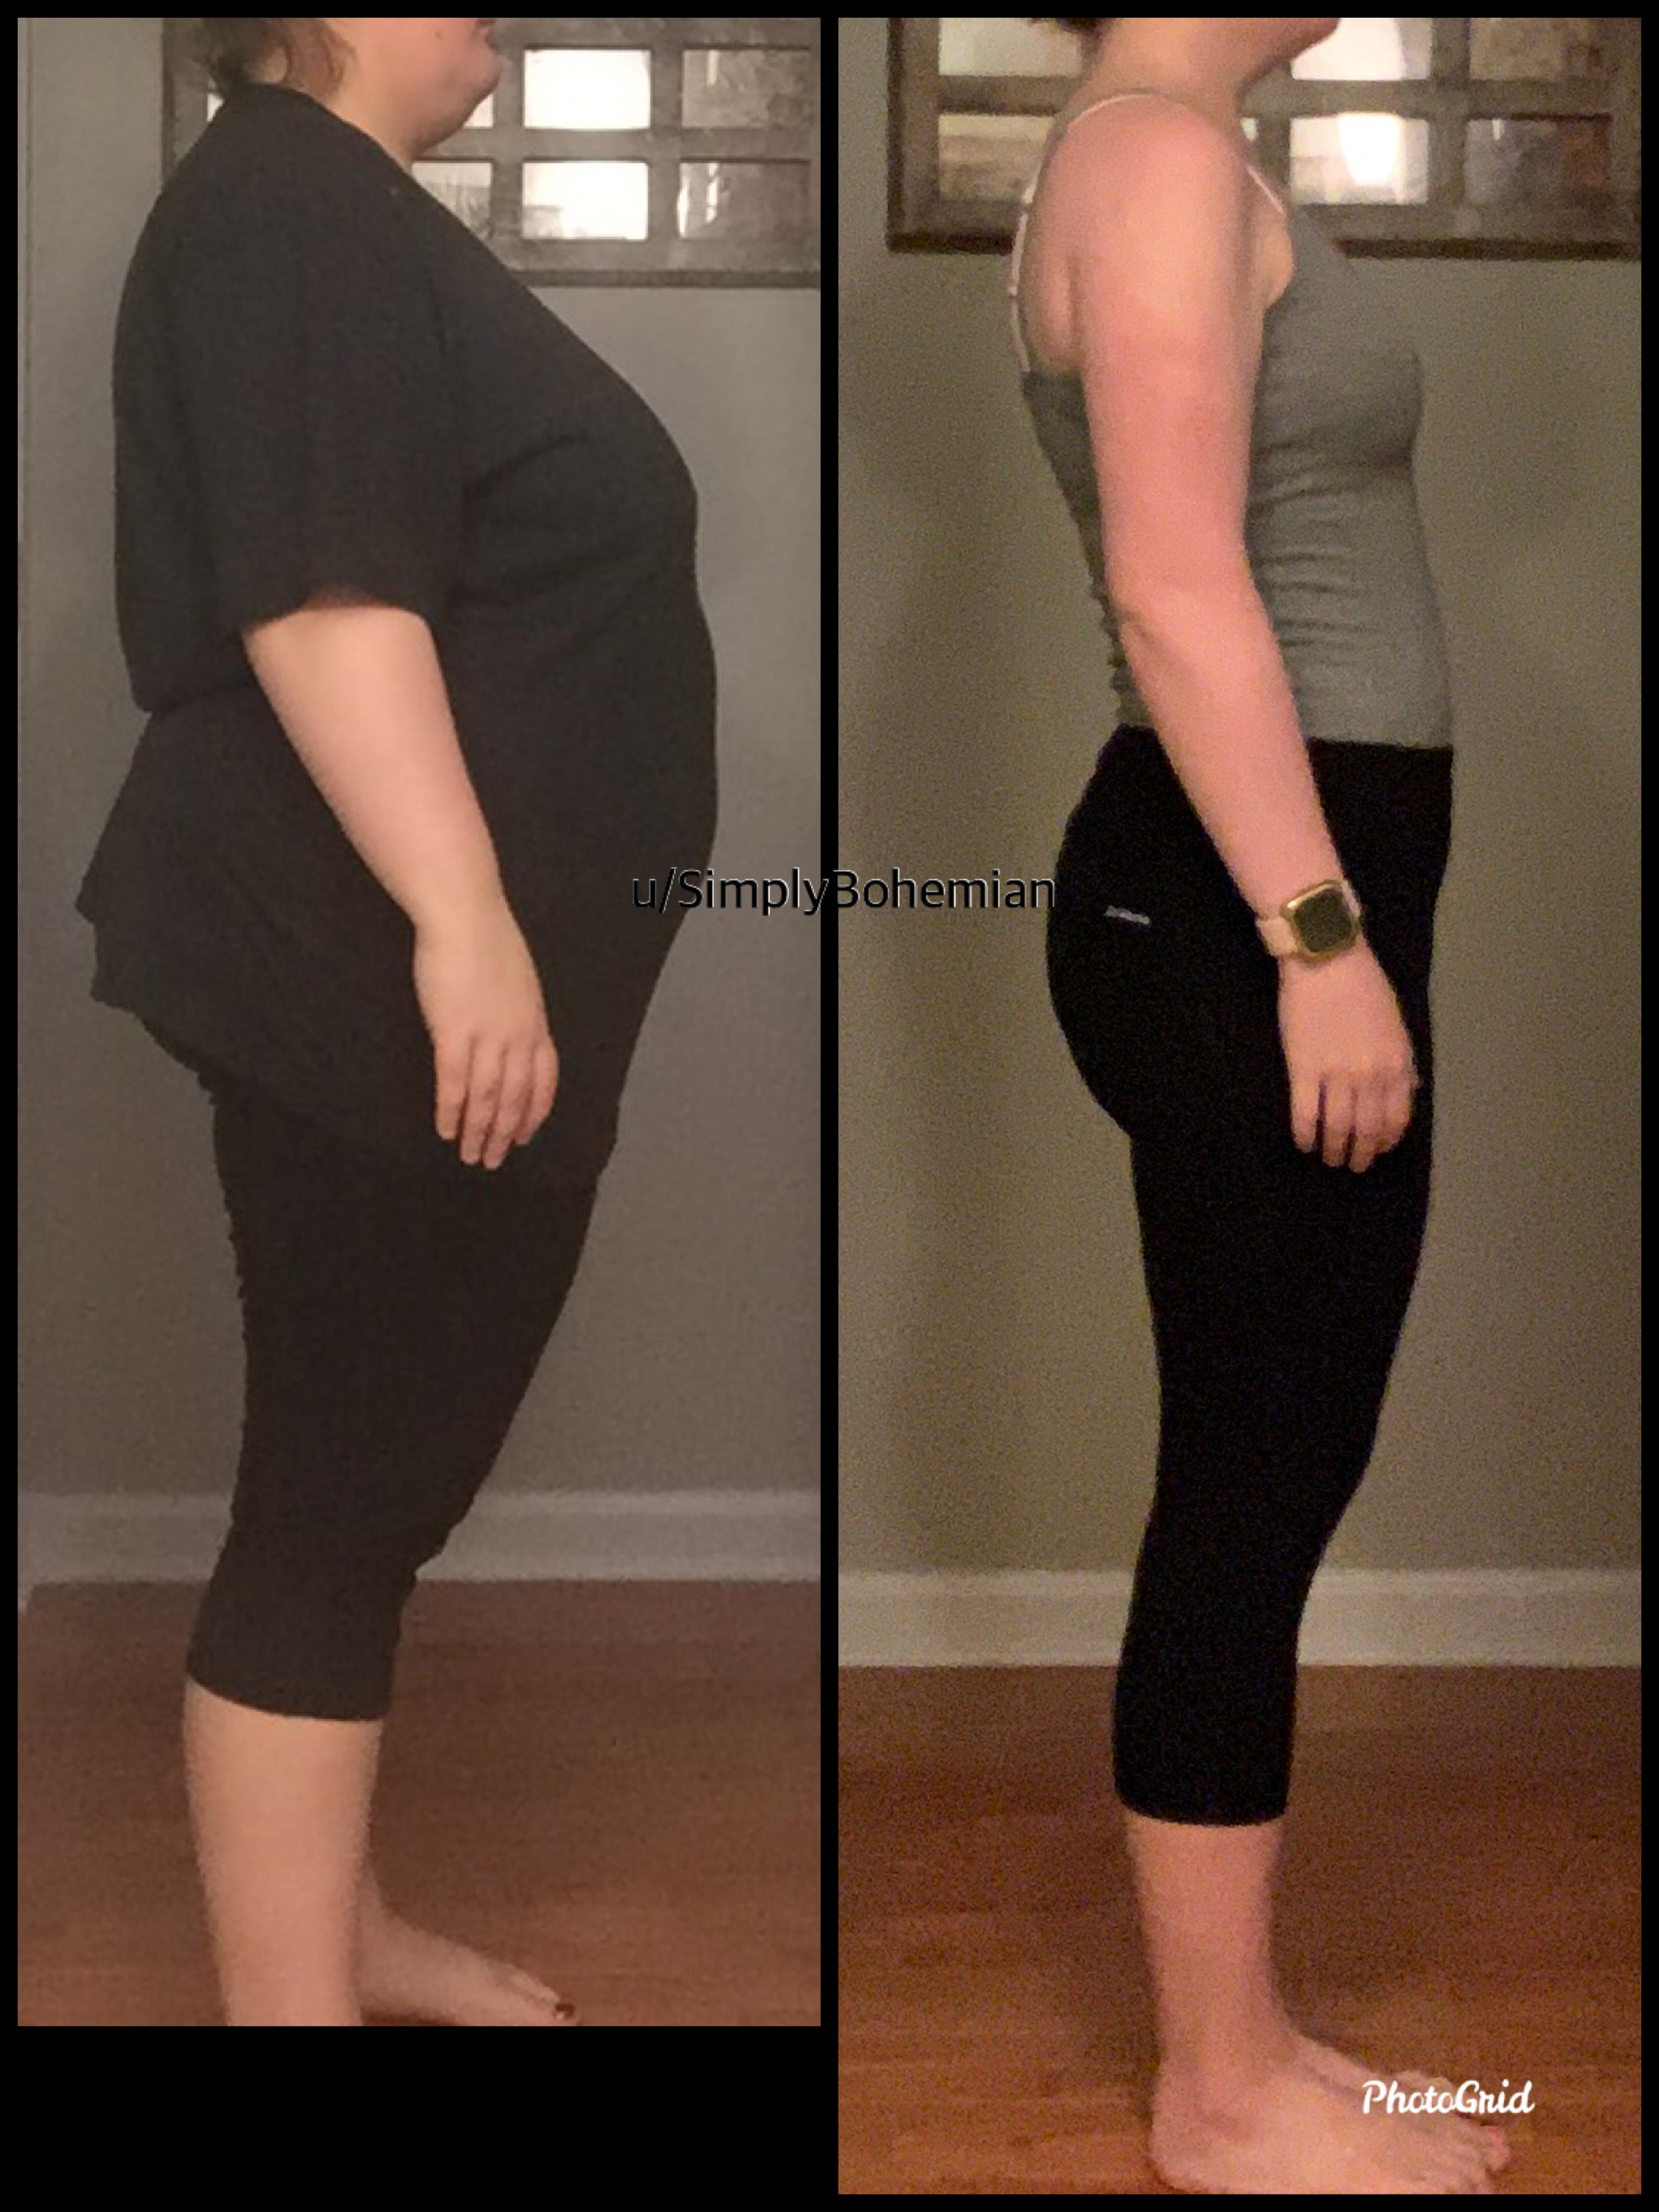 5 foot 3 Female 101 lbs Weight Loss Before and After 230 lbs to 129 lbs